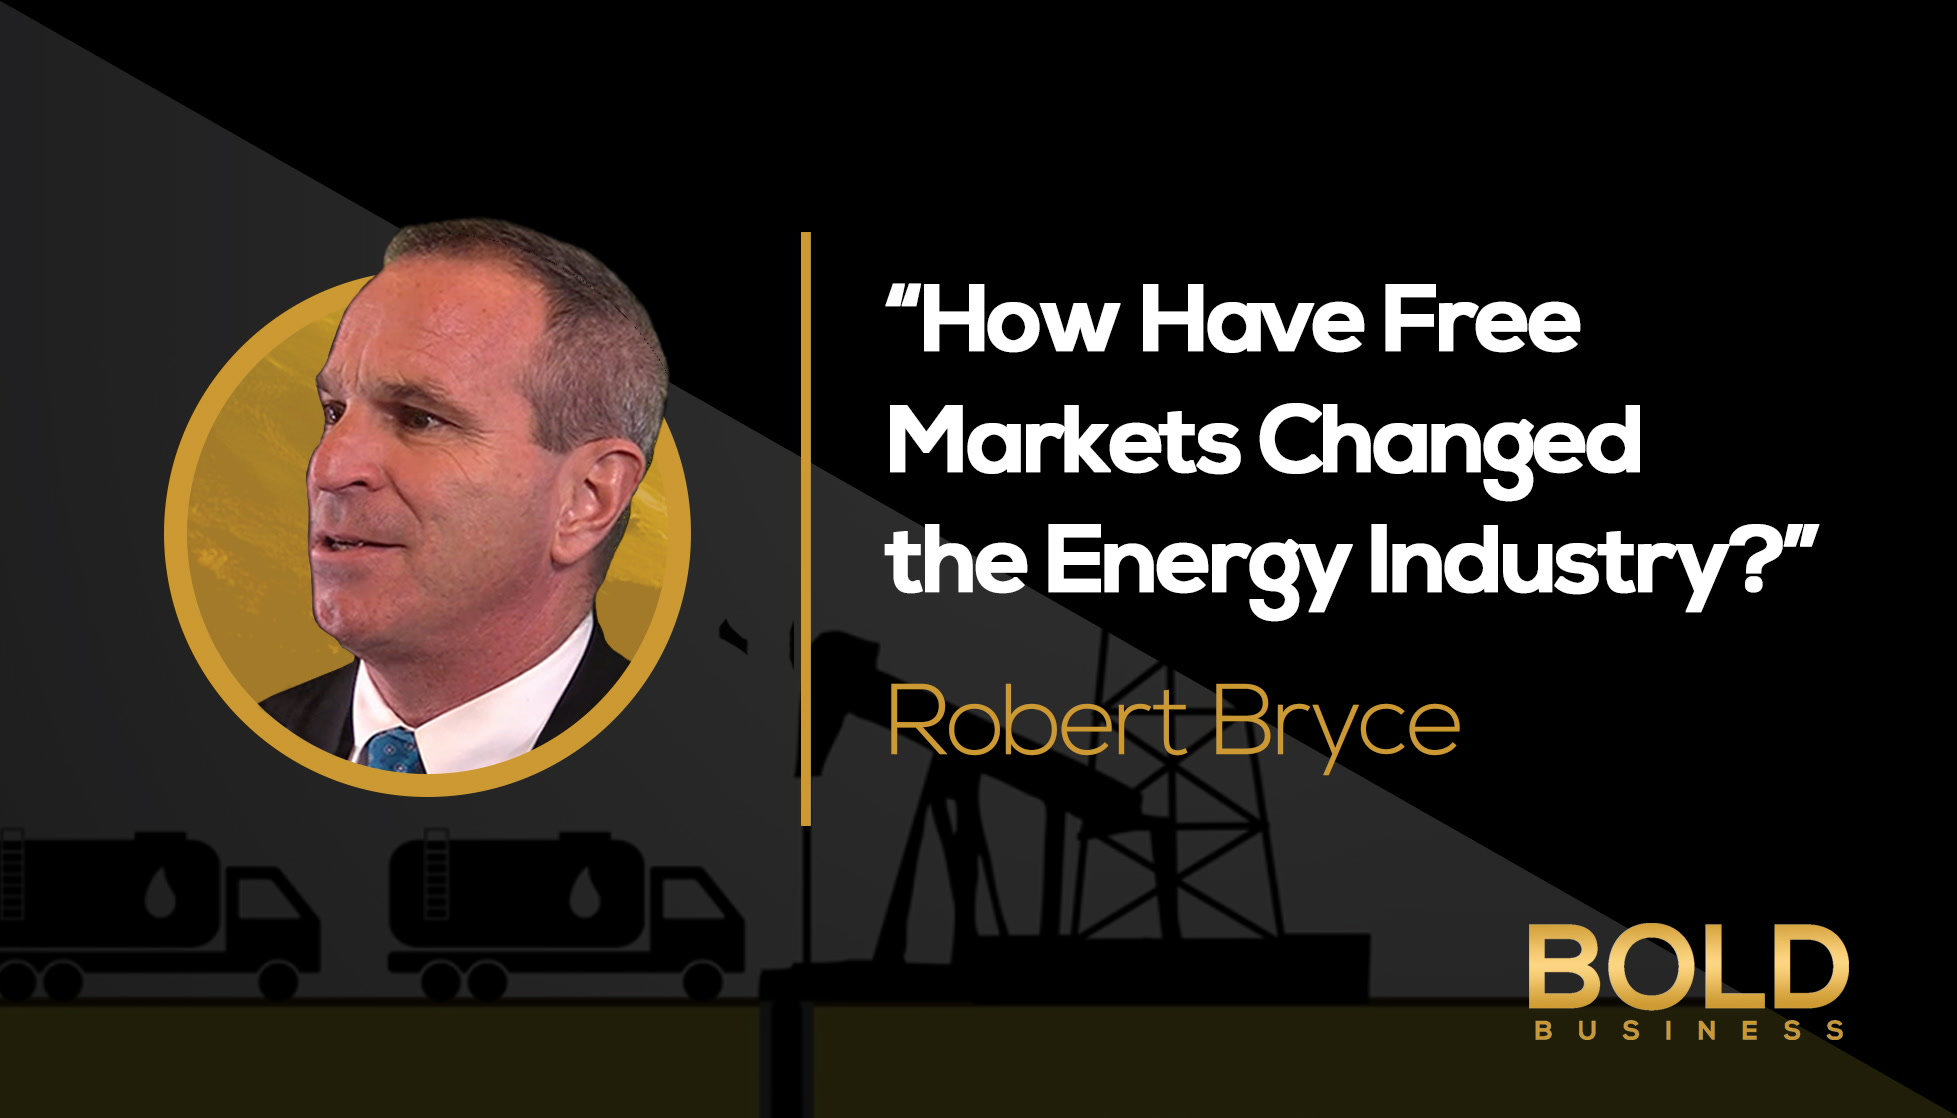 Robert Bryce - Energy Free Markets Transform Industry